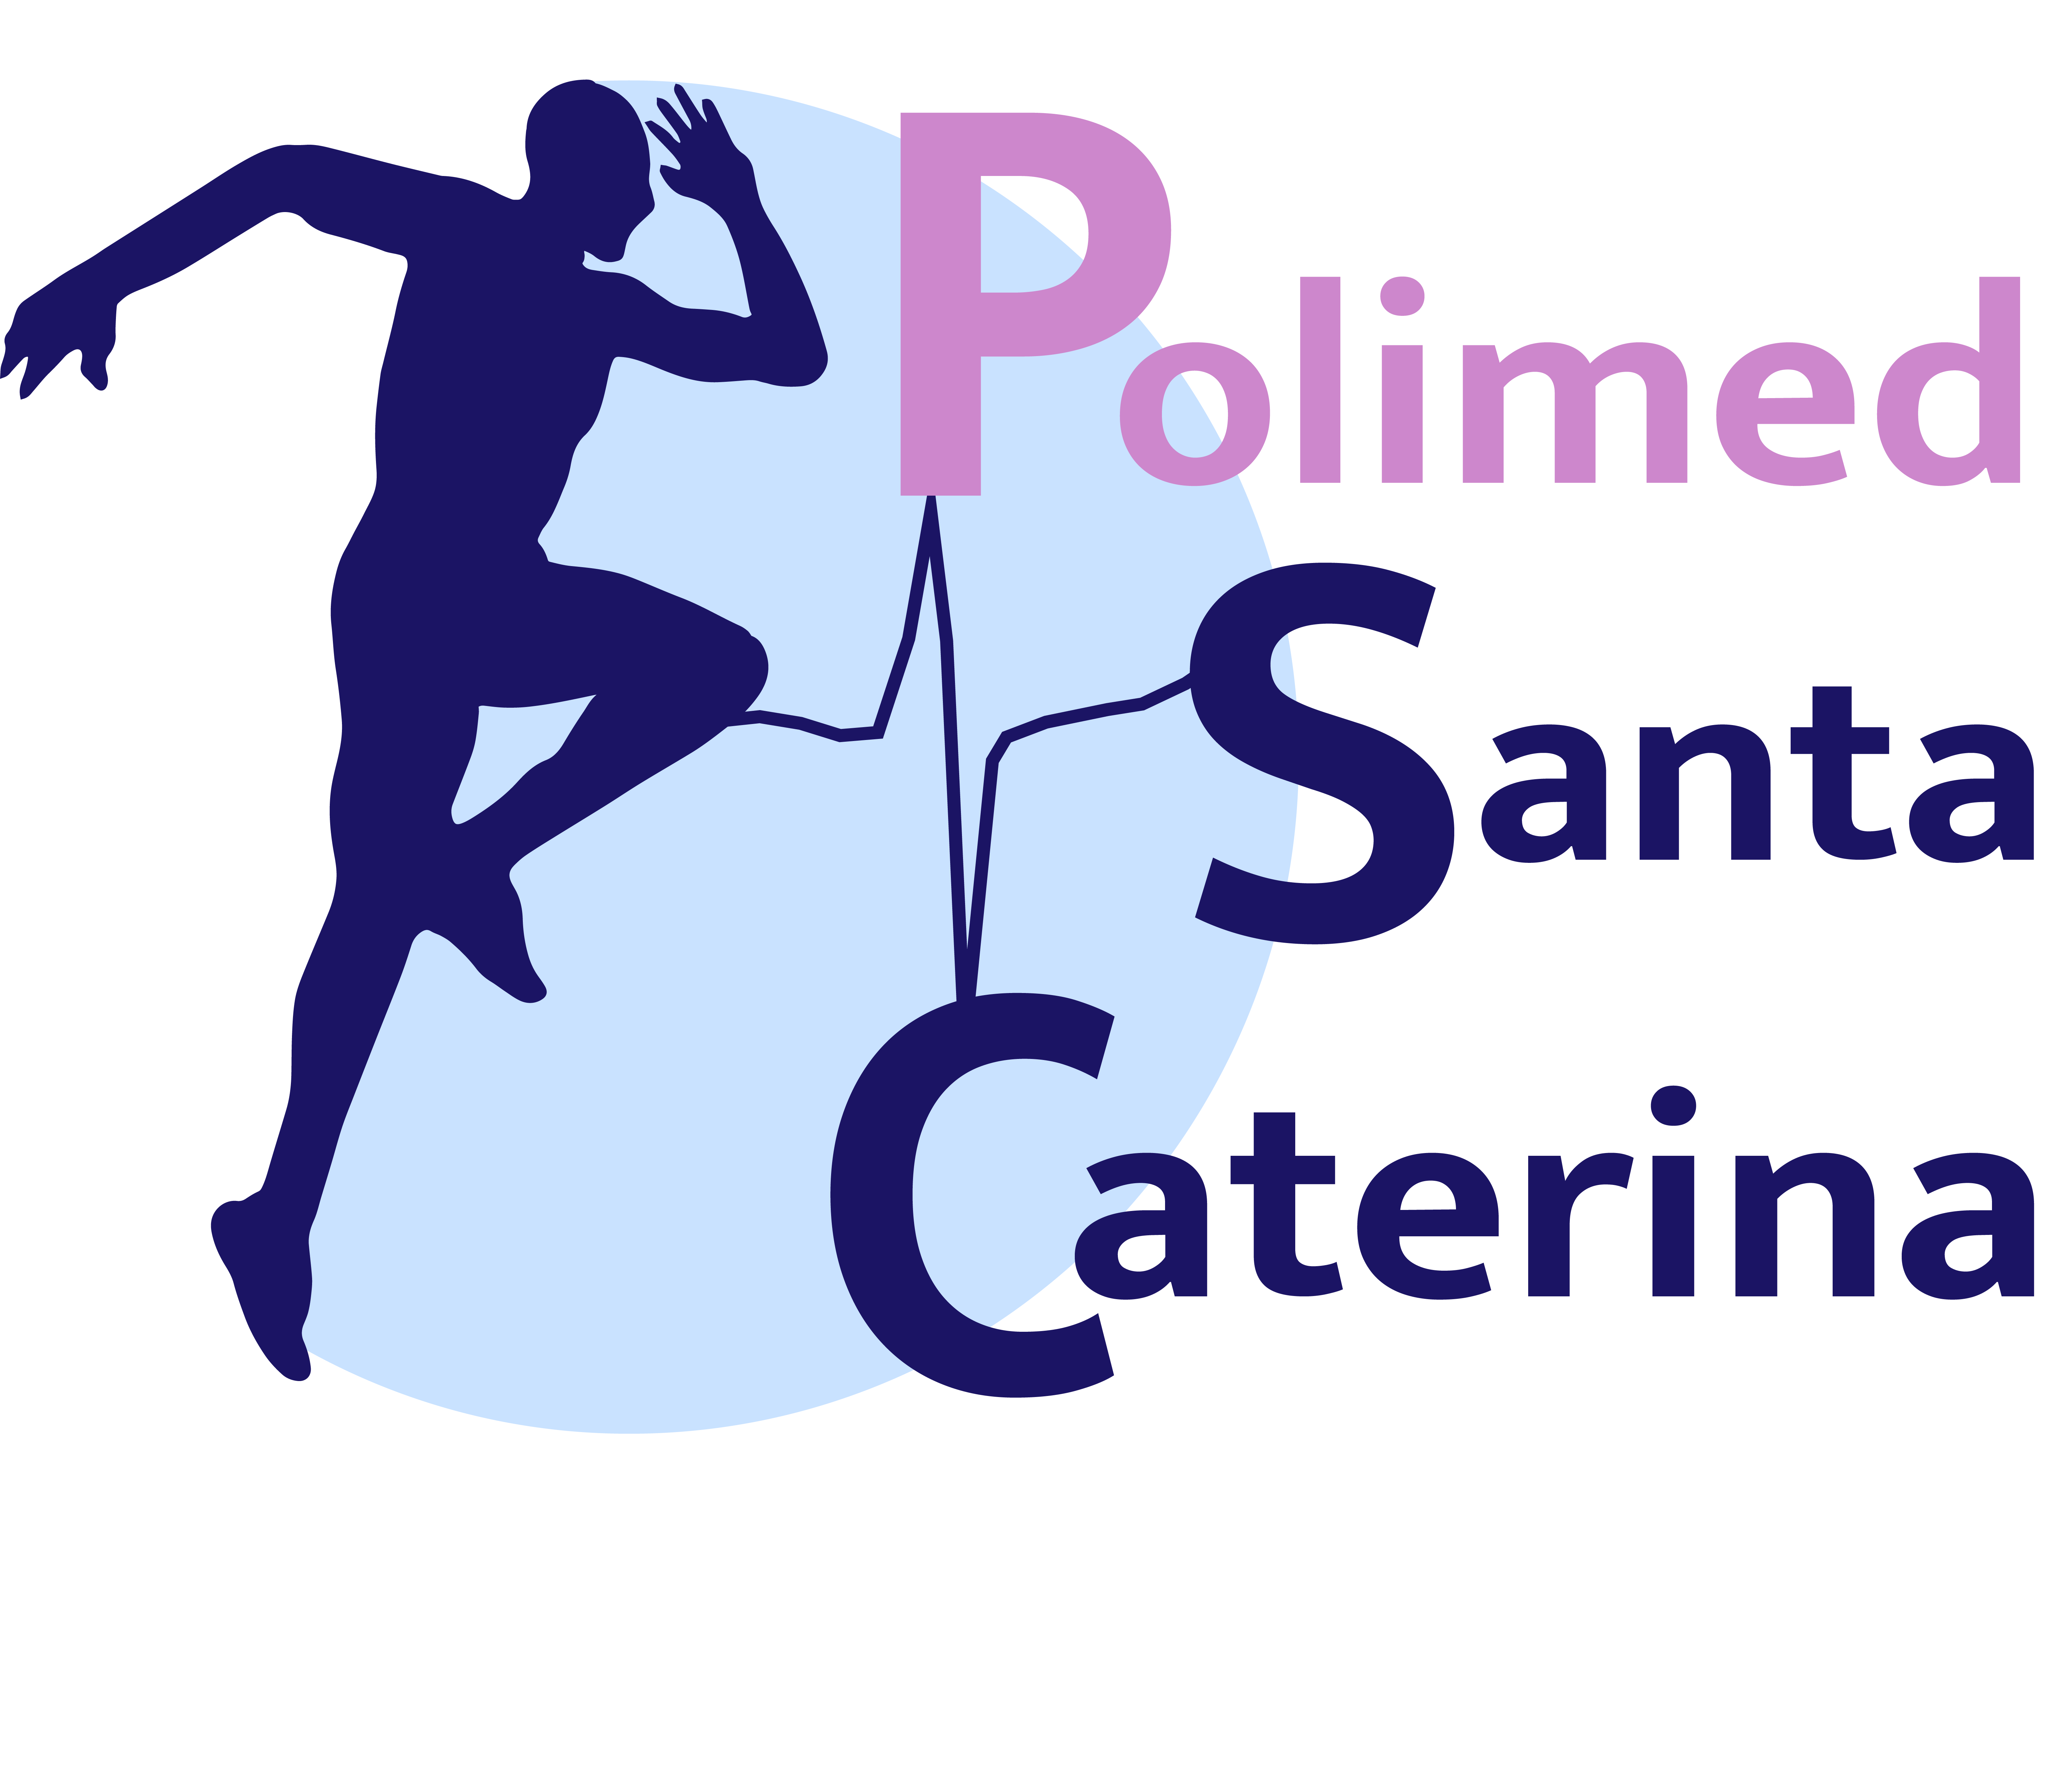 Polimed Santa Caterina